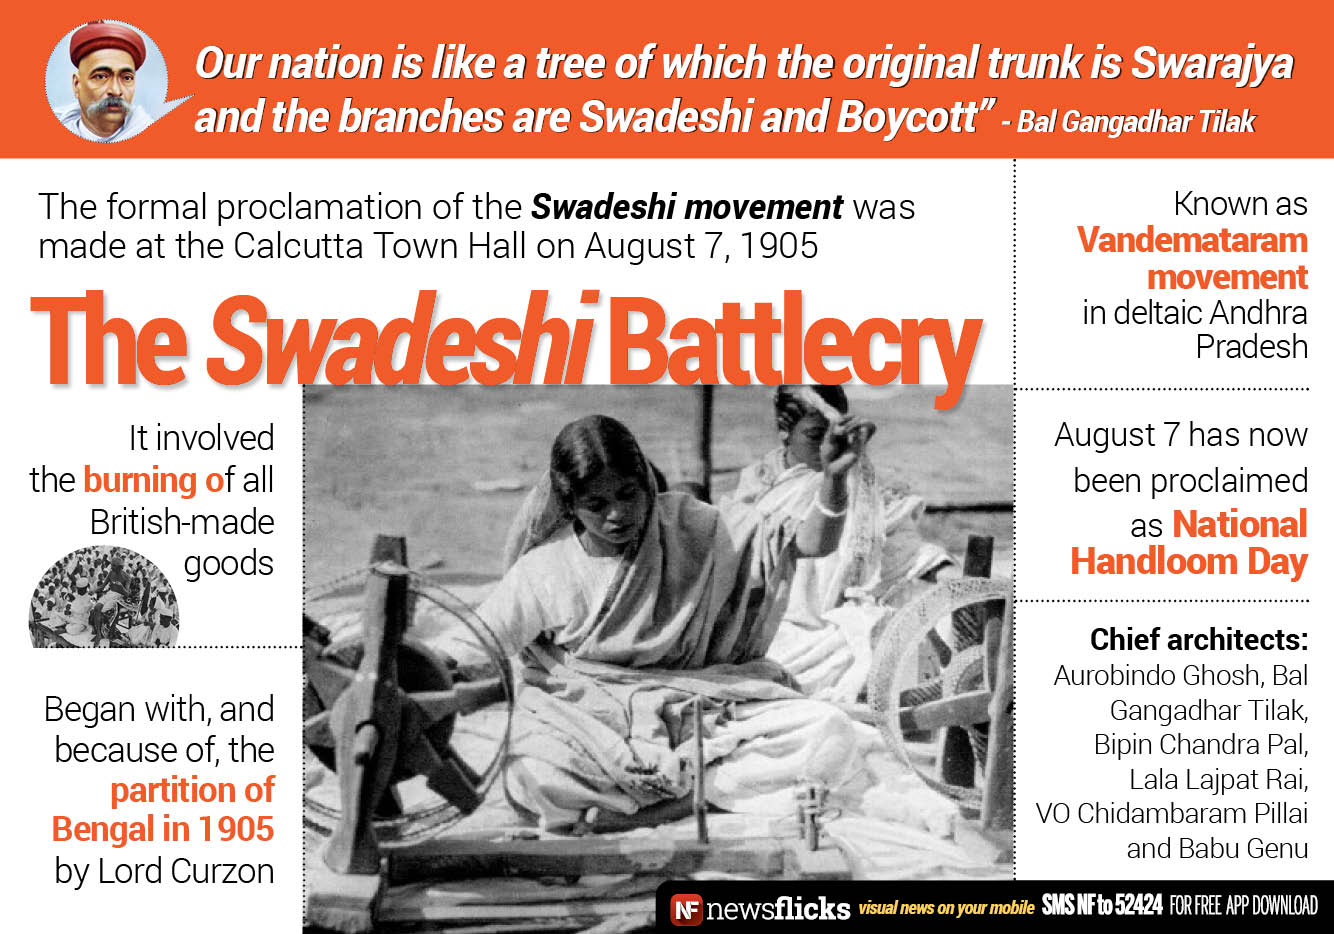 the swadeshi movement and the boycott Swadeshi movement why  the partition of bengal led to the people to adopt two coercive weapons: 'swadeshi' and 'boycott' when and where  the swadeshi movement started with the partition of bengal by the viceroy of india, lord curzon, 1905 and continued up to 1911 it was the most successful of the pre-gandhian movements.